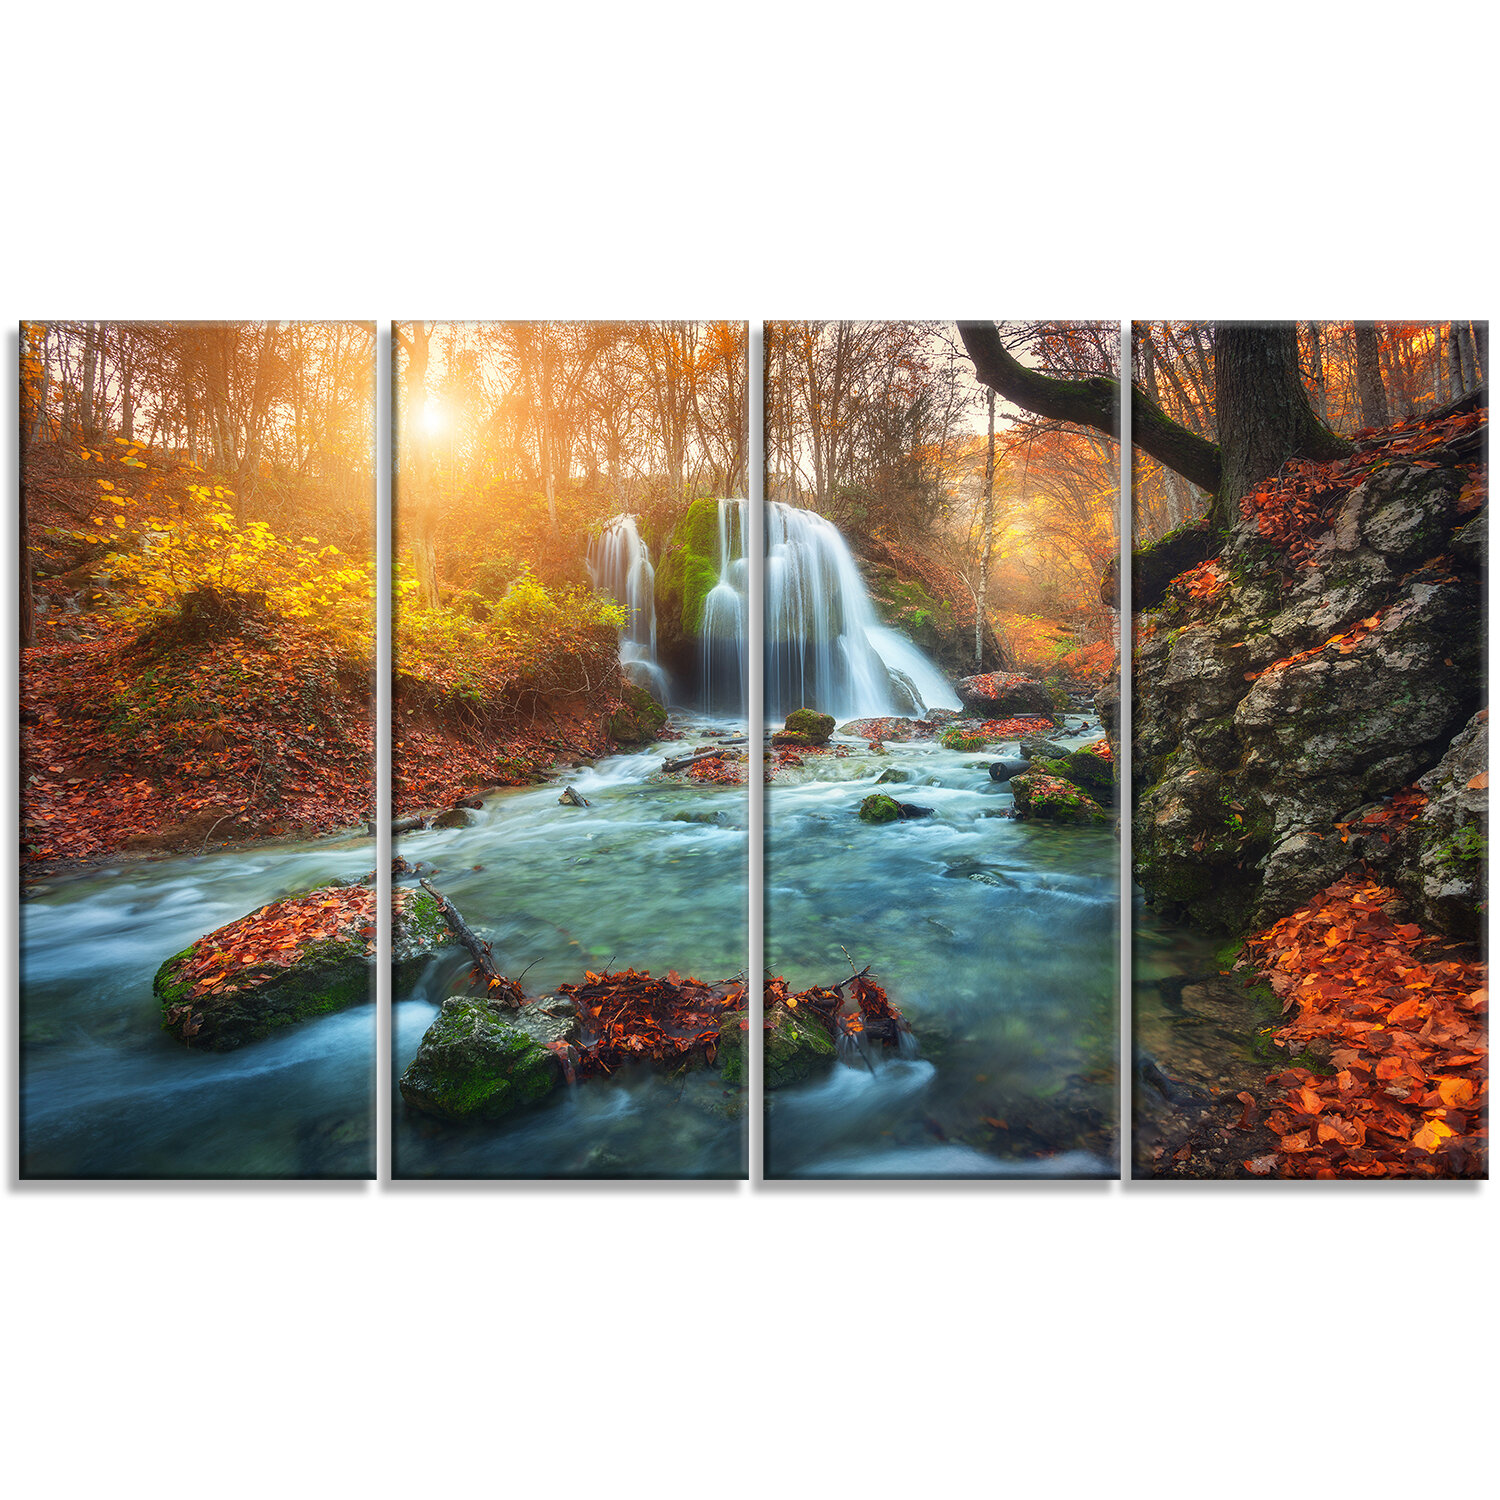 Designart Fast Flowing Fall River In Forest 4 Piece Graphic Art On Wrapped Canvas Set Wayfair